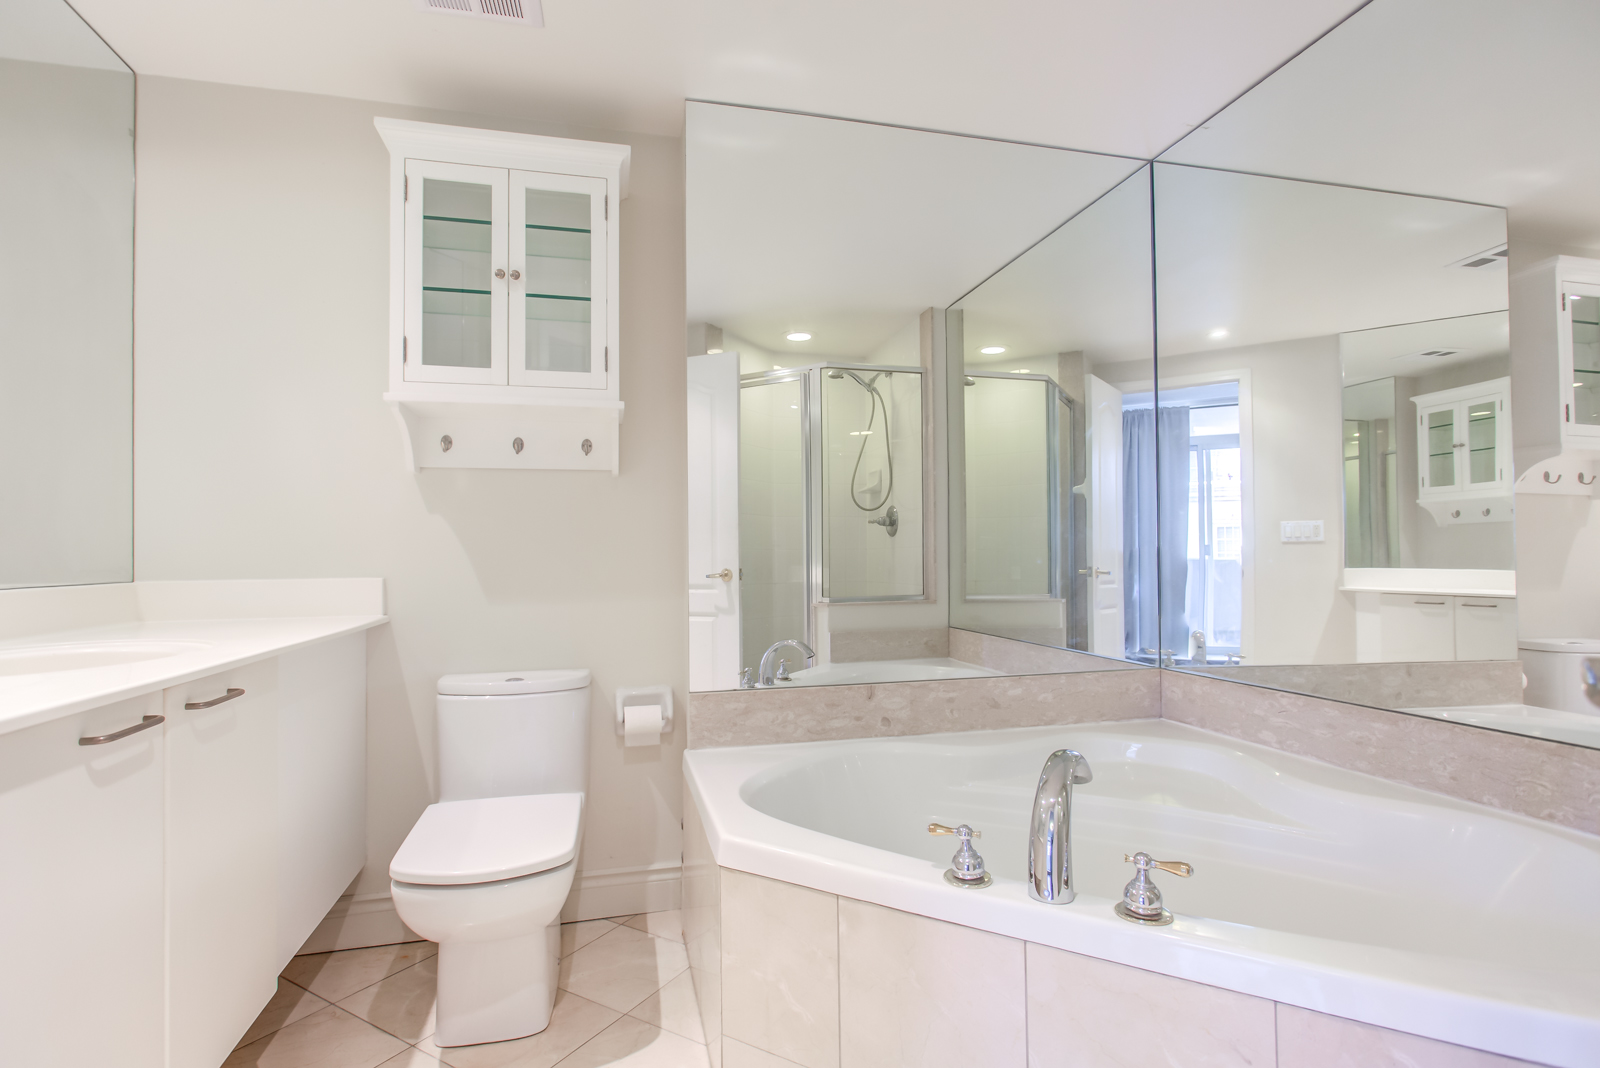 Ensuite bath with Jacuzzi, white sink and cabinet, and wall-to-wall mirrors.